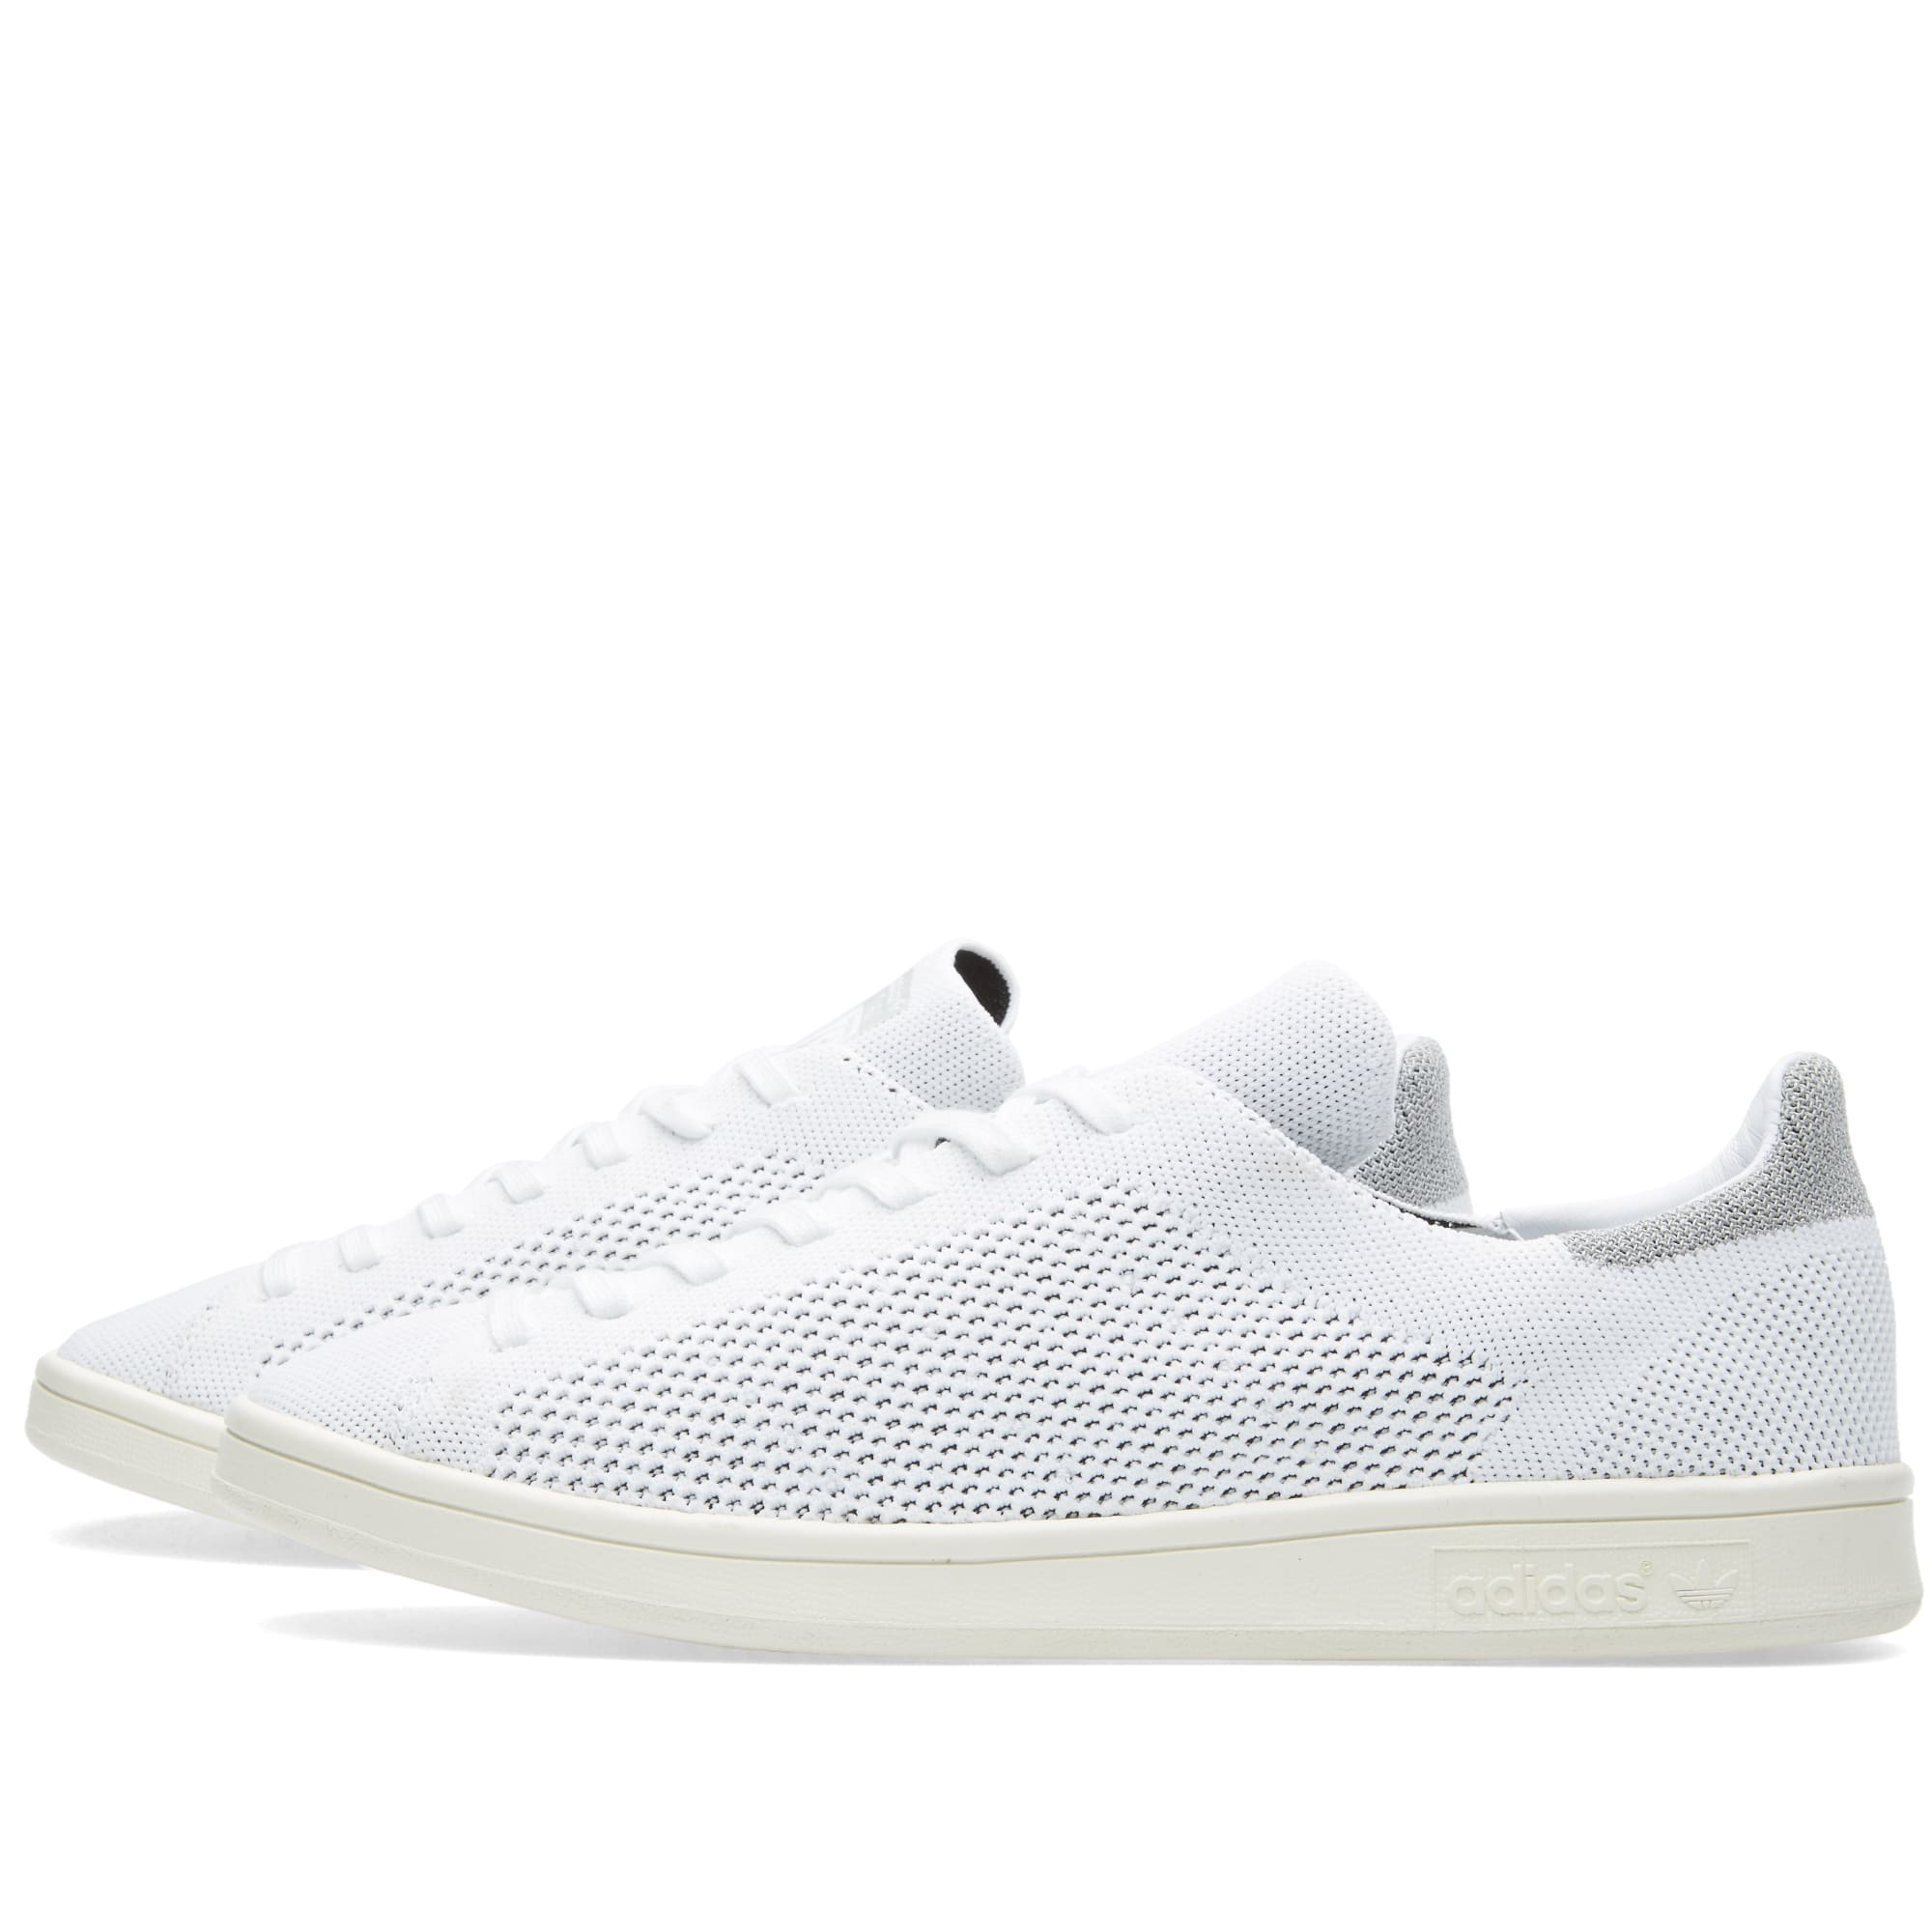 watch f91d5 05b8d Adidas Consortium Stan Smith Primeknit Reflective